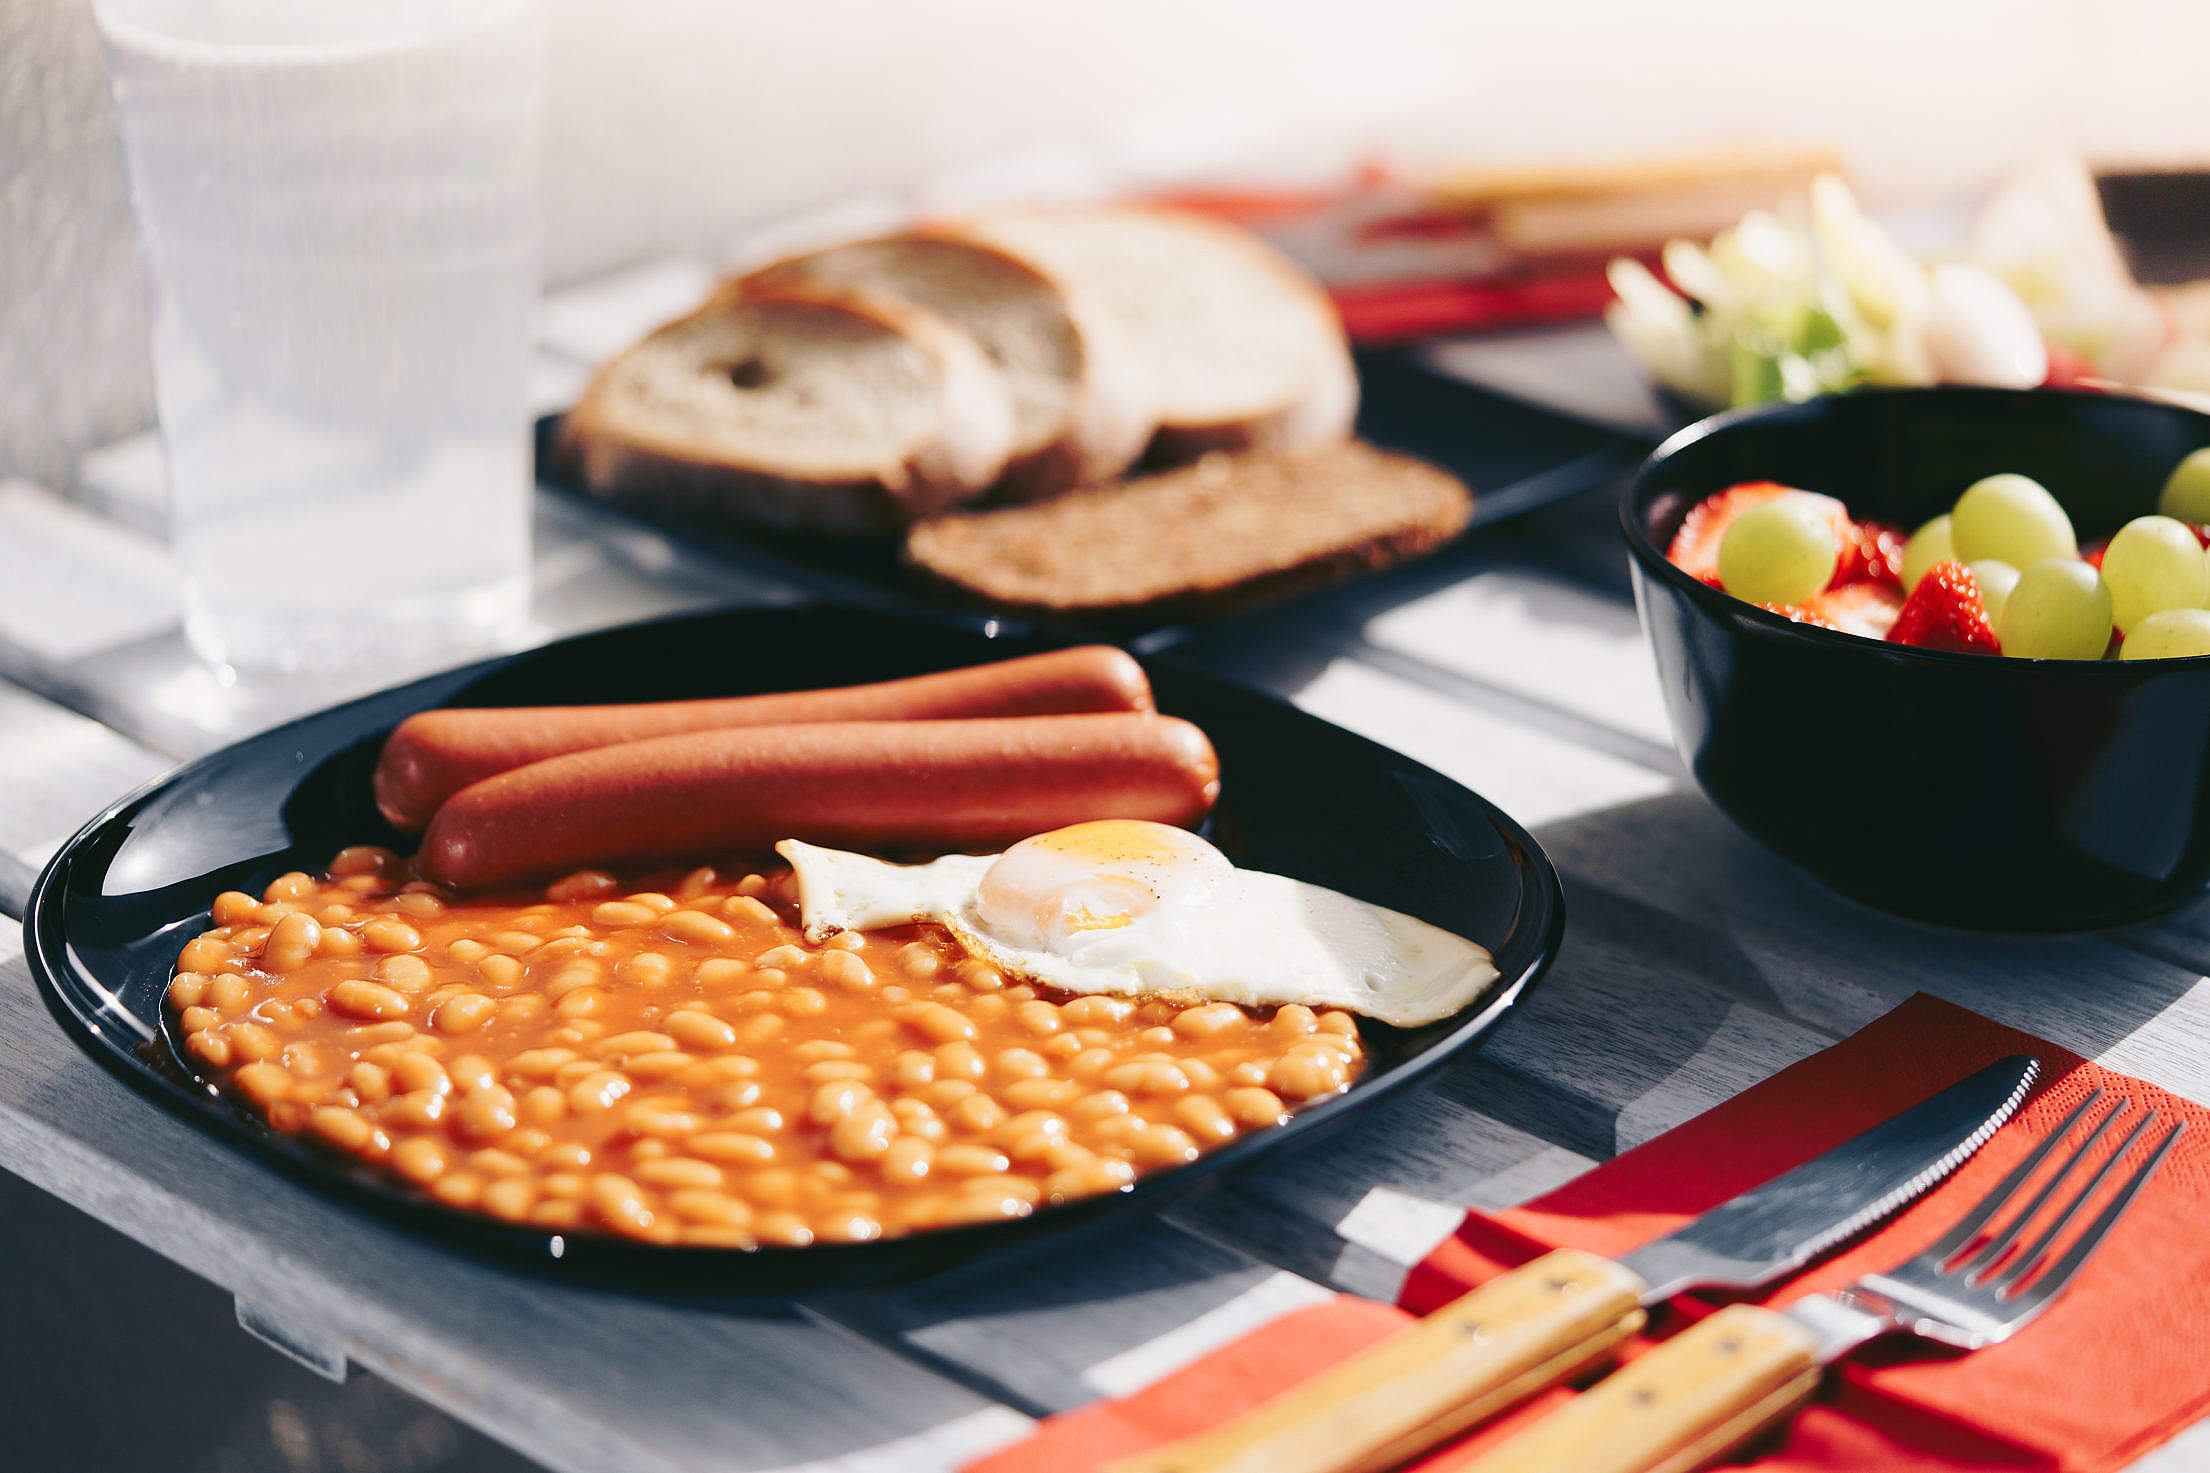 Sausages with Beans and Fried Egg Morning Breakfast Free Stock Photo